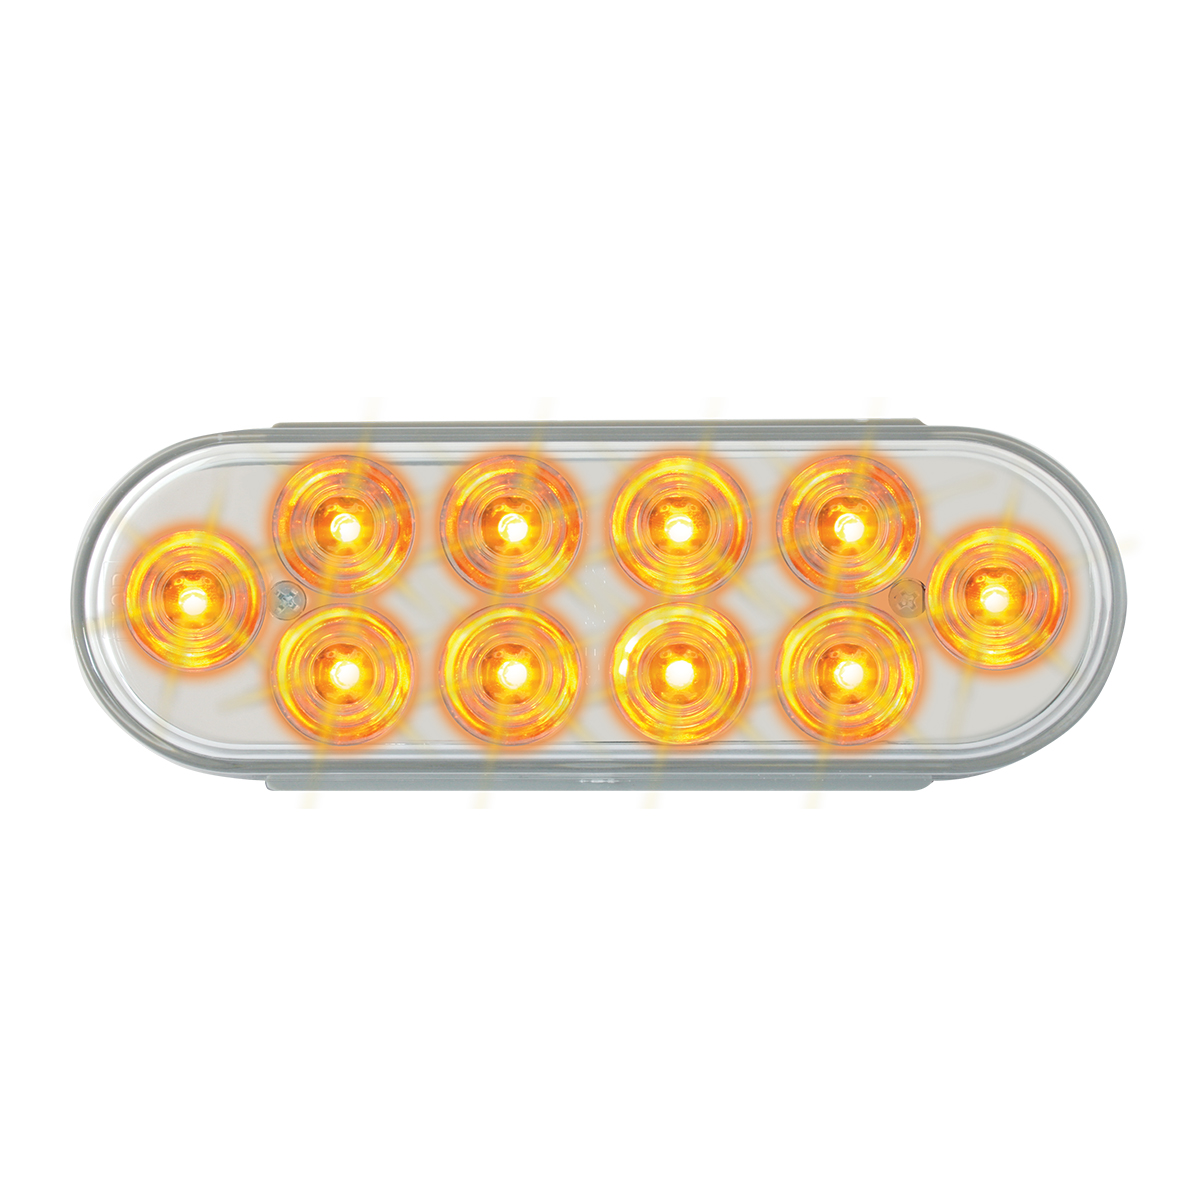 76861 Oval Mega 10 Plus LED Light in Amber/Clear